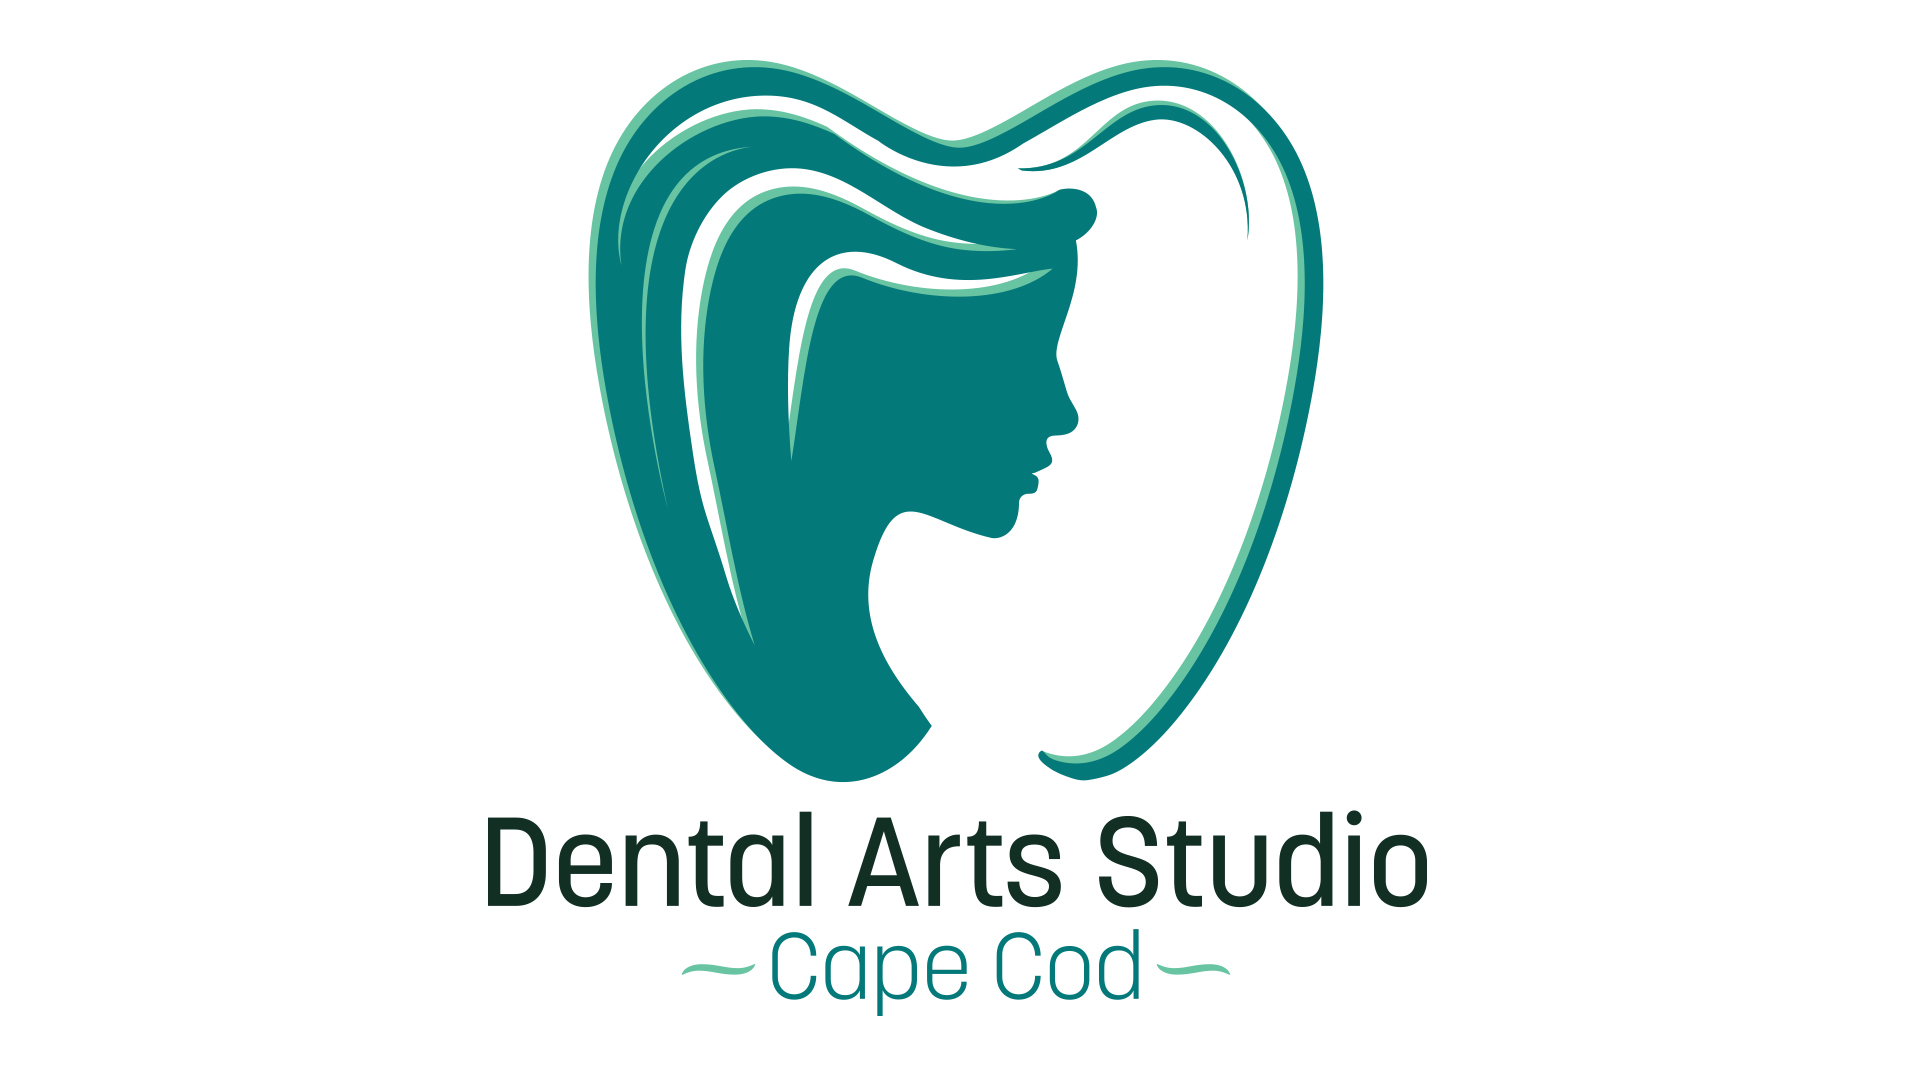 Dental Arts Studio